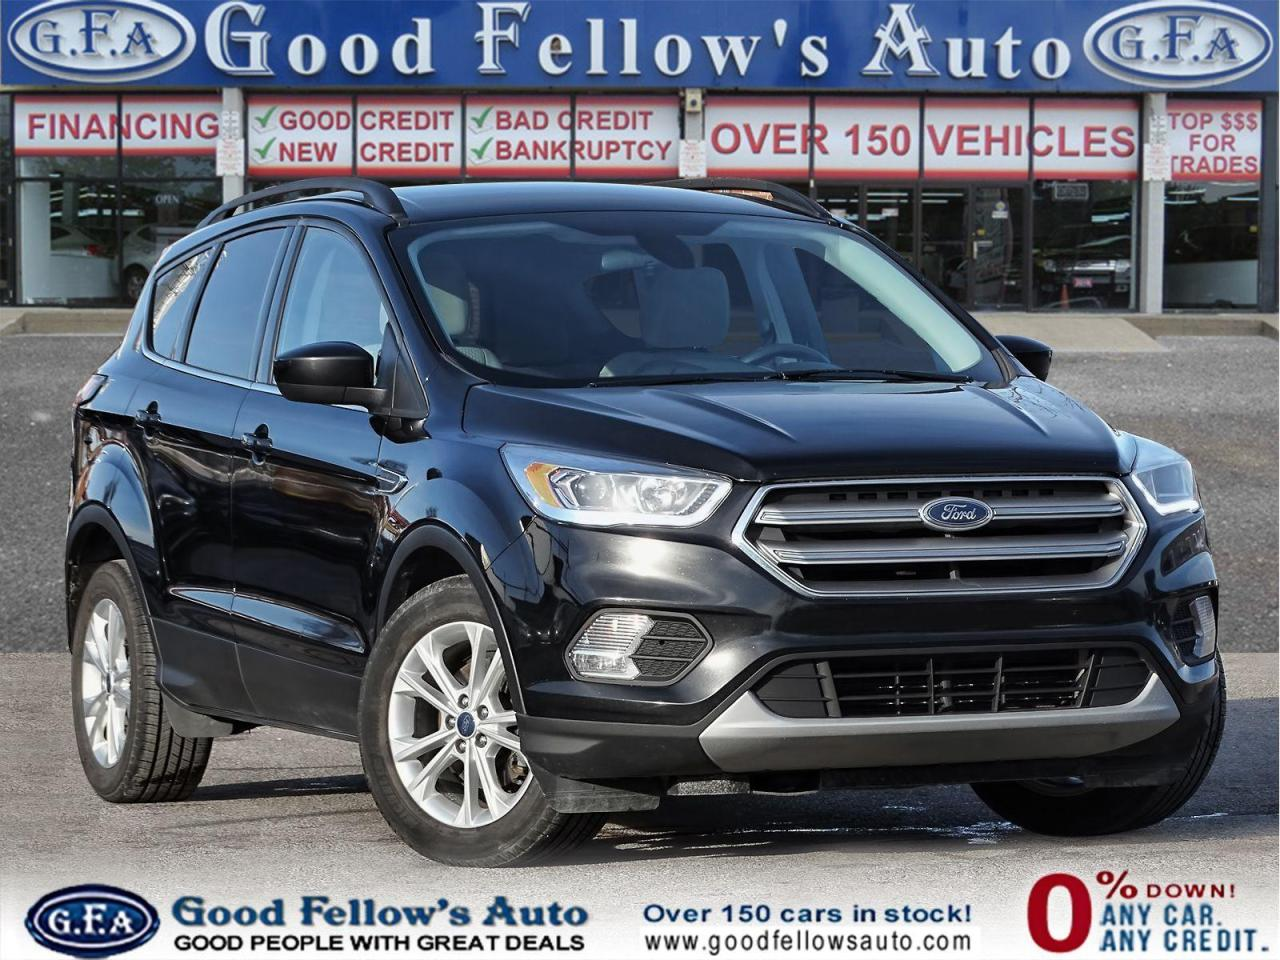 used 2017 Ford Escape car, priced at $14,400